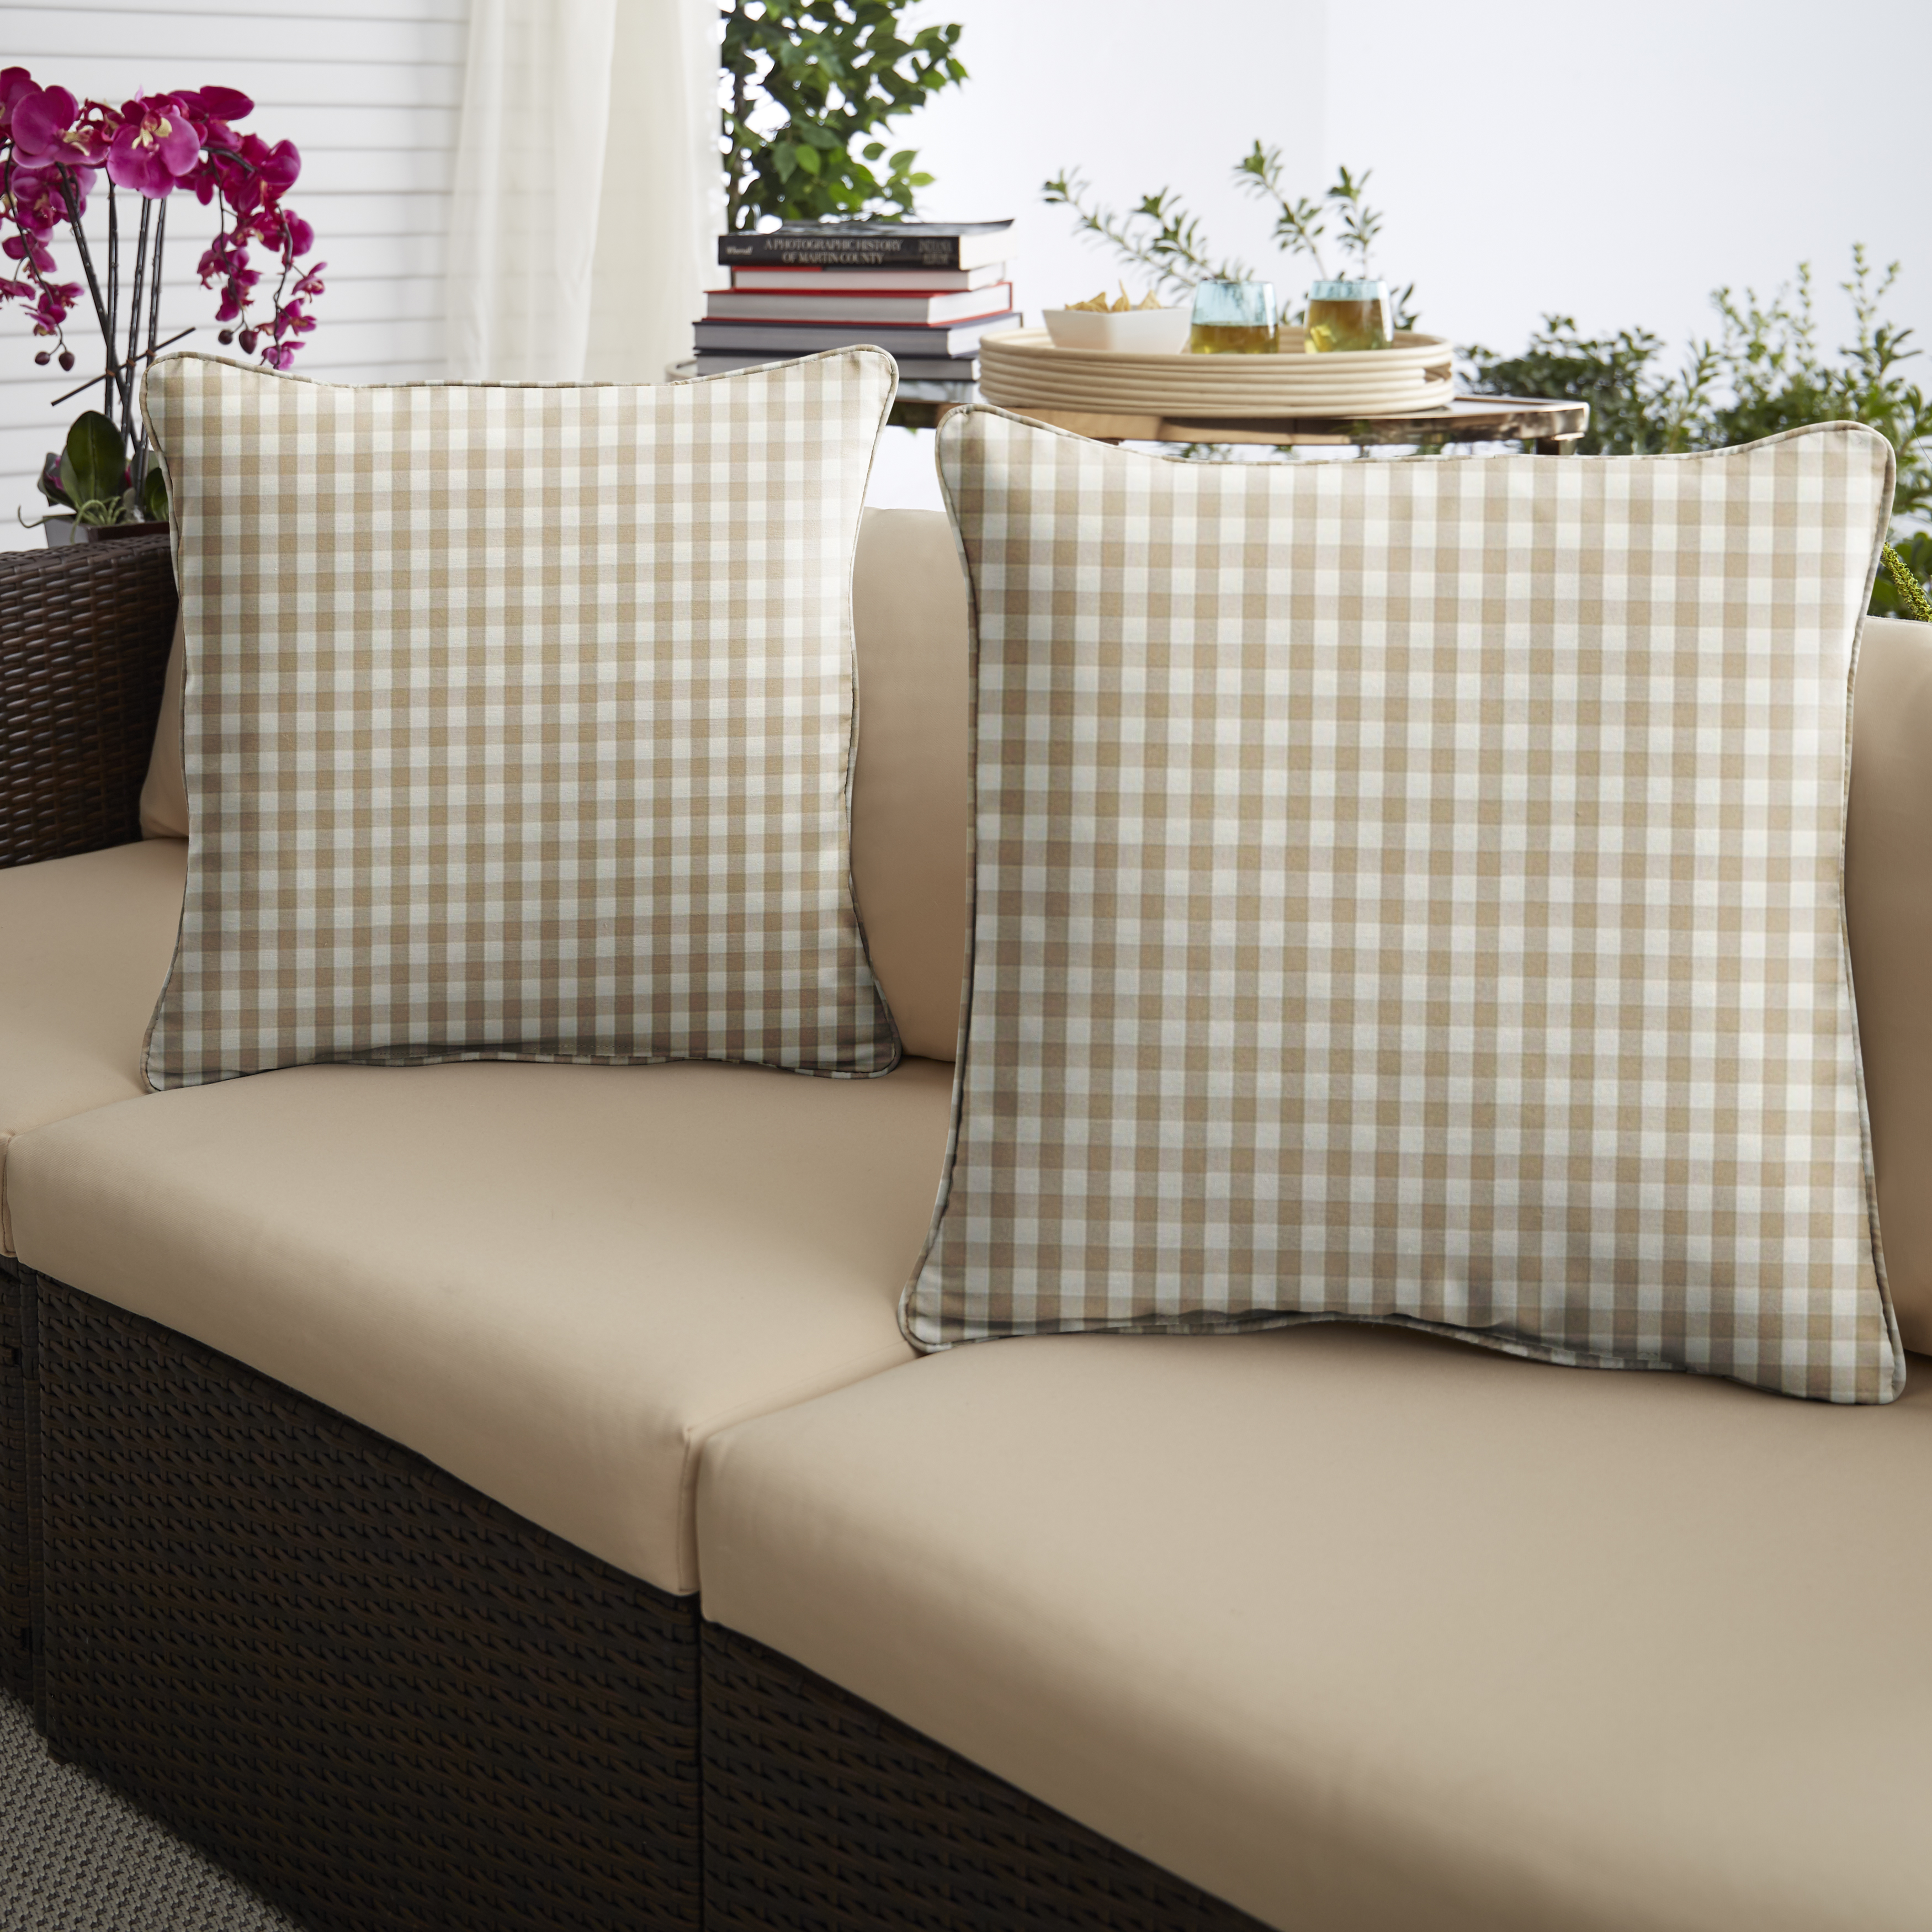 Beige/White Check Set of 2 Outdoor Pillows